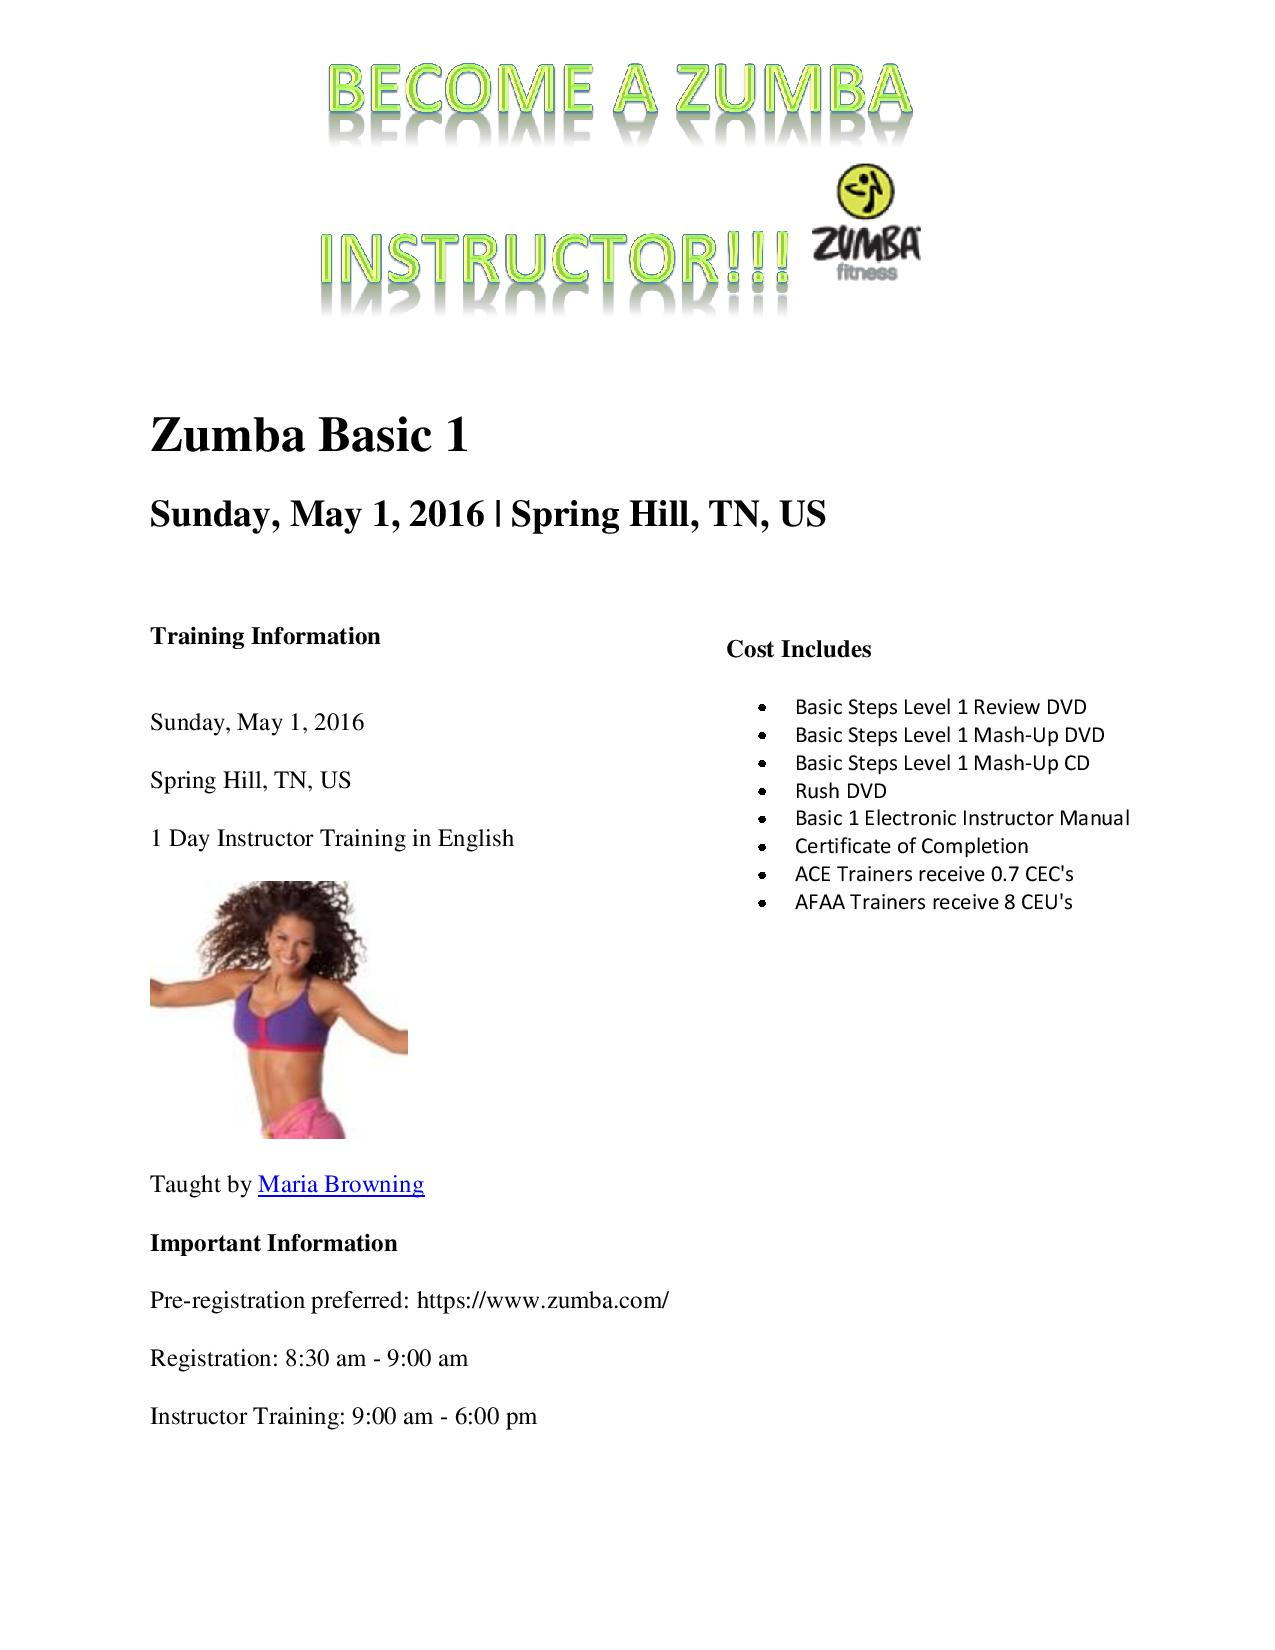 Zumba instructor training zumba basic 1 spring hill fitness 24 become a zumba instructor with this one day certification program cost includes level 1 review and mash up dvds see httpszumba for details and xflitez Images